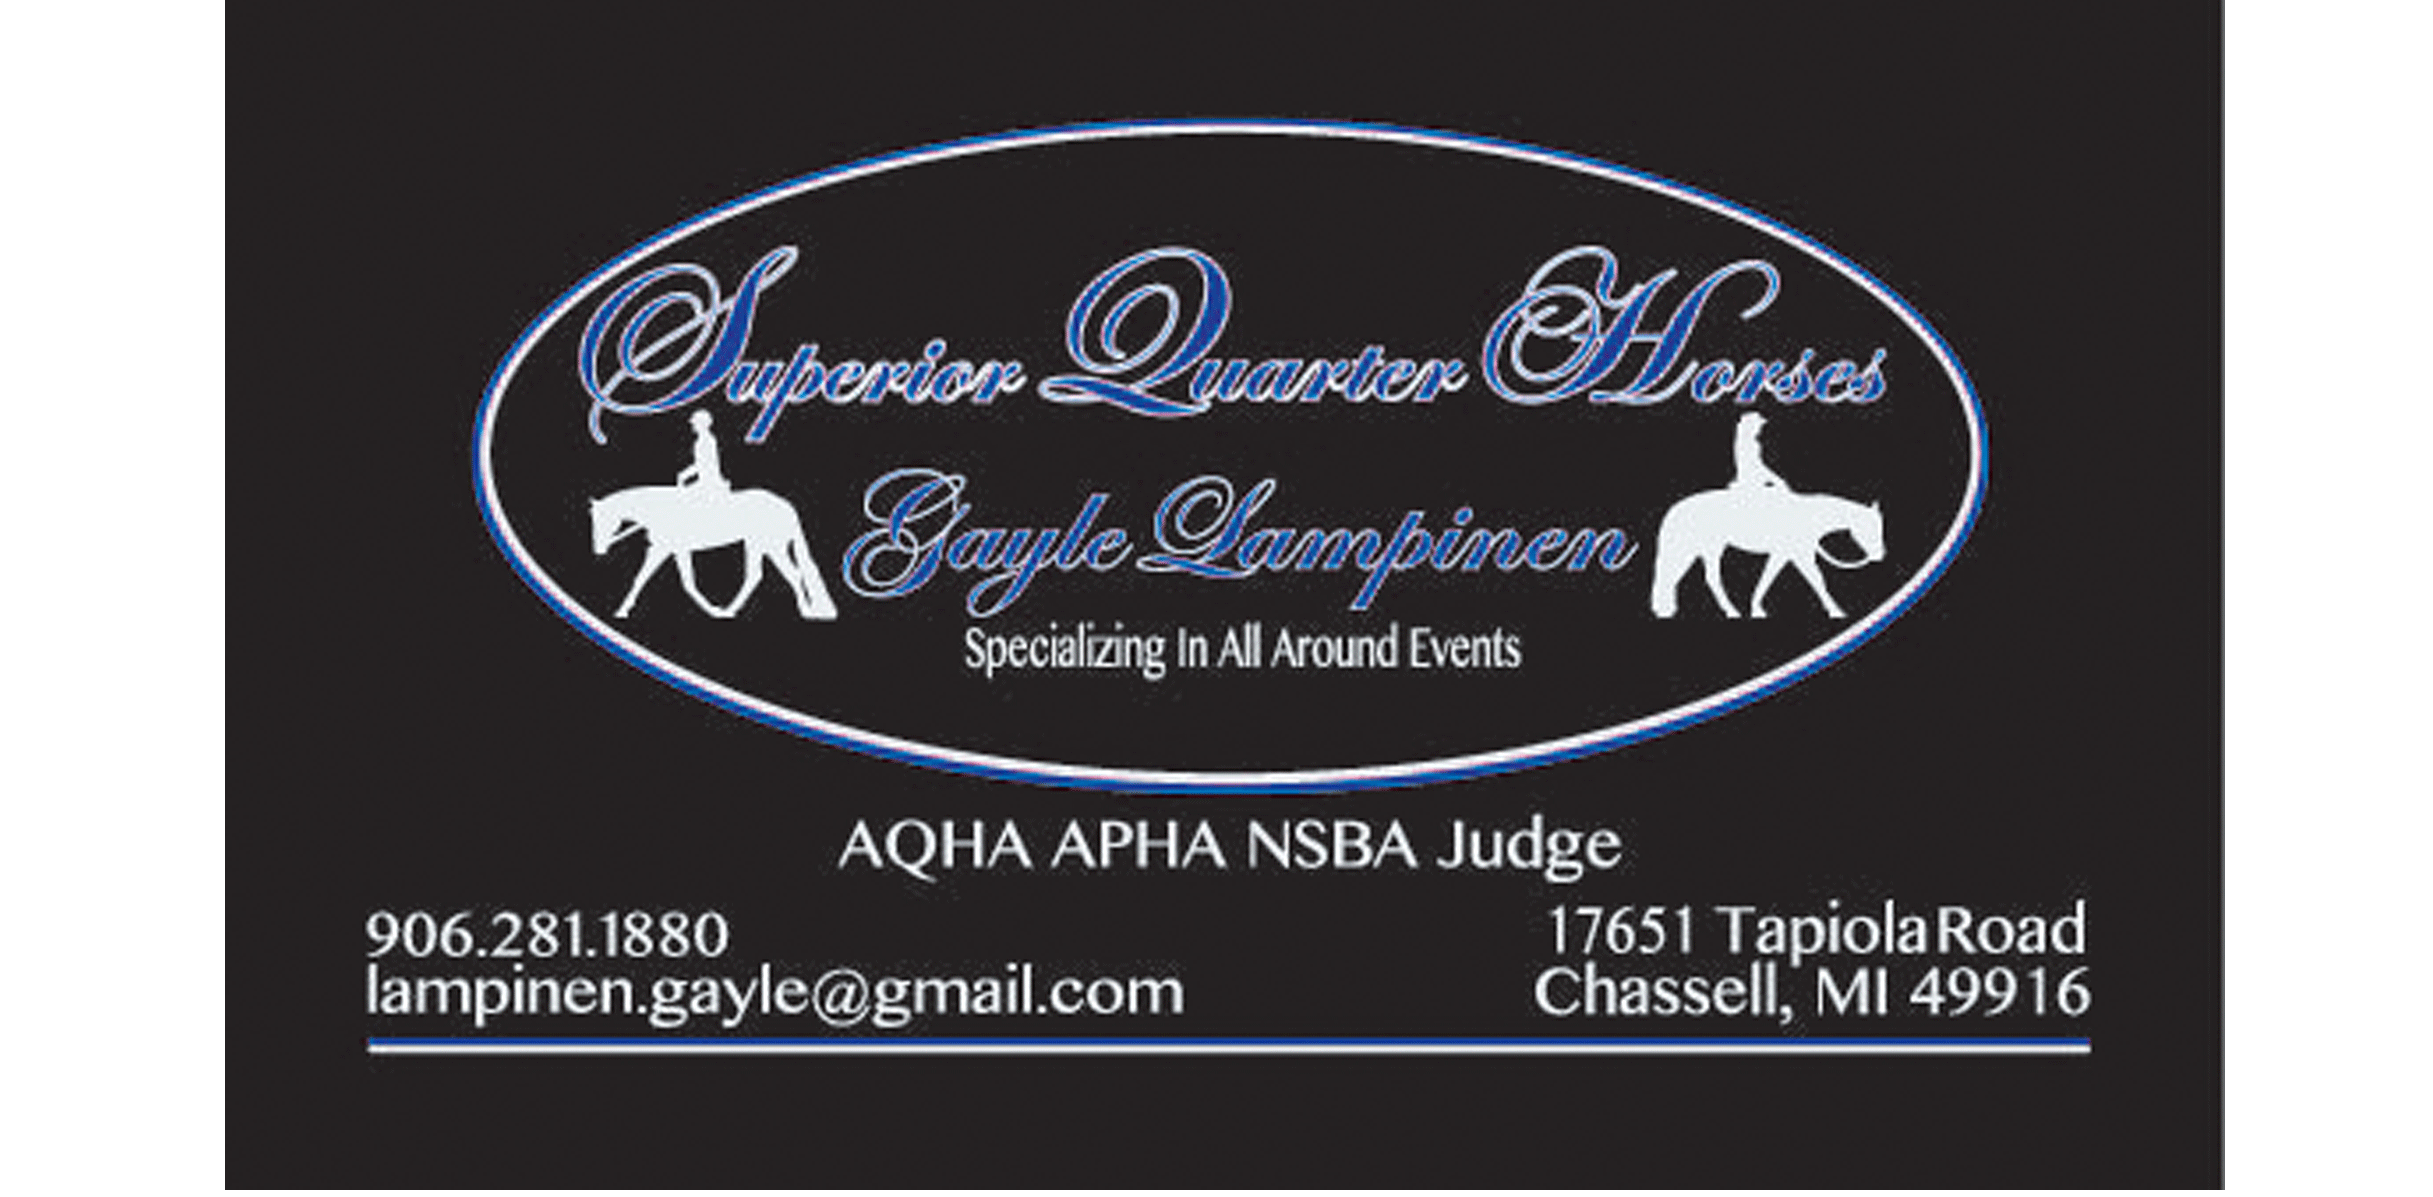 Equine Services | Welcome to Less Designs & Marketing!